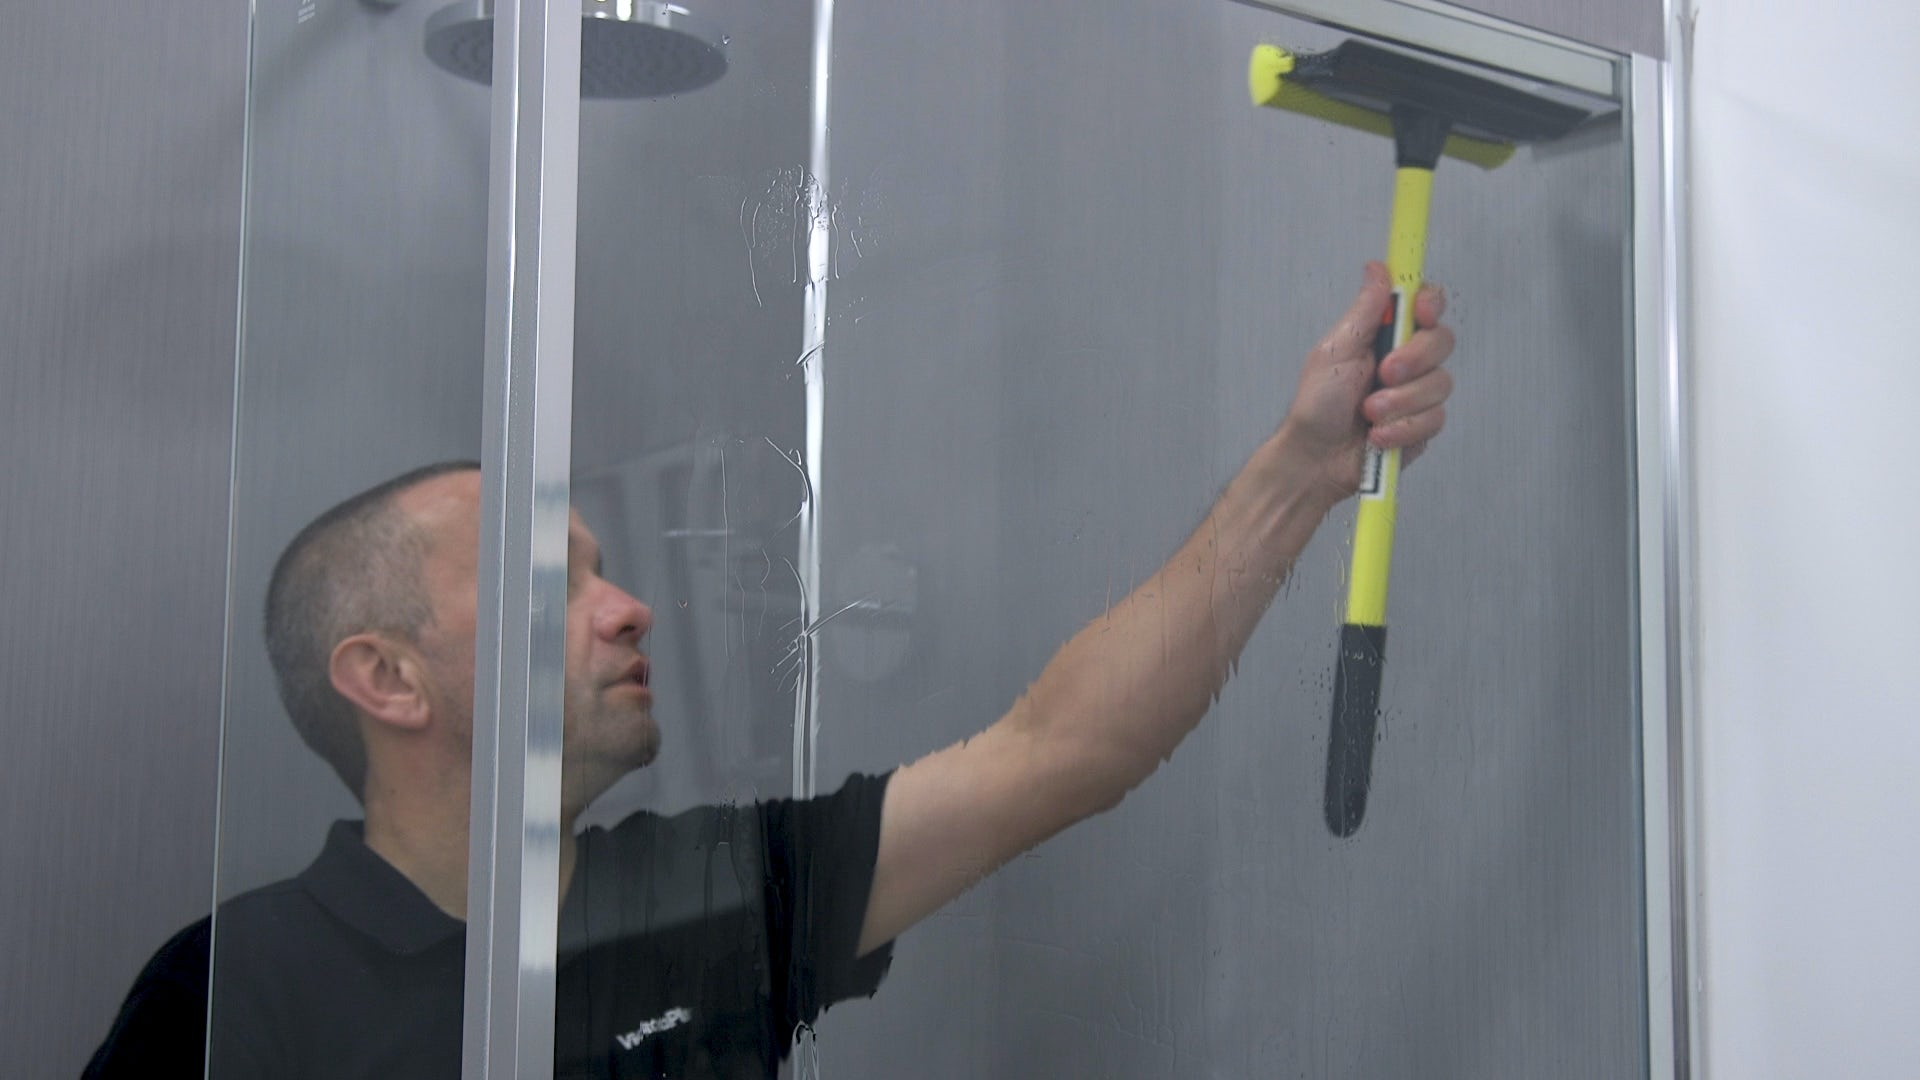 Squeegee screen